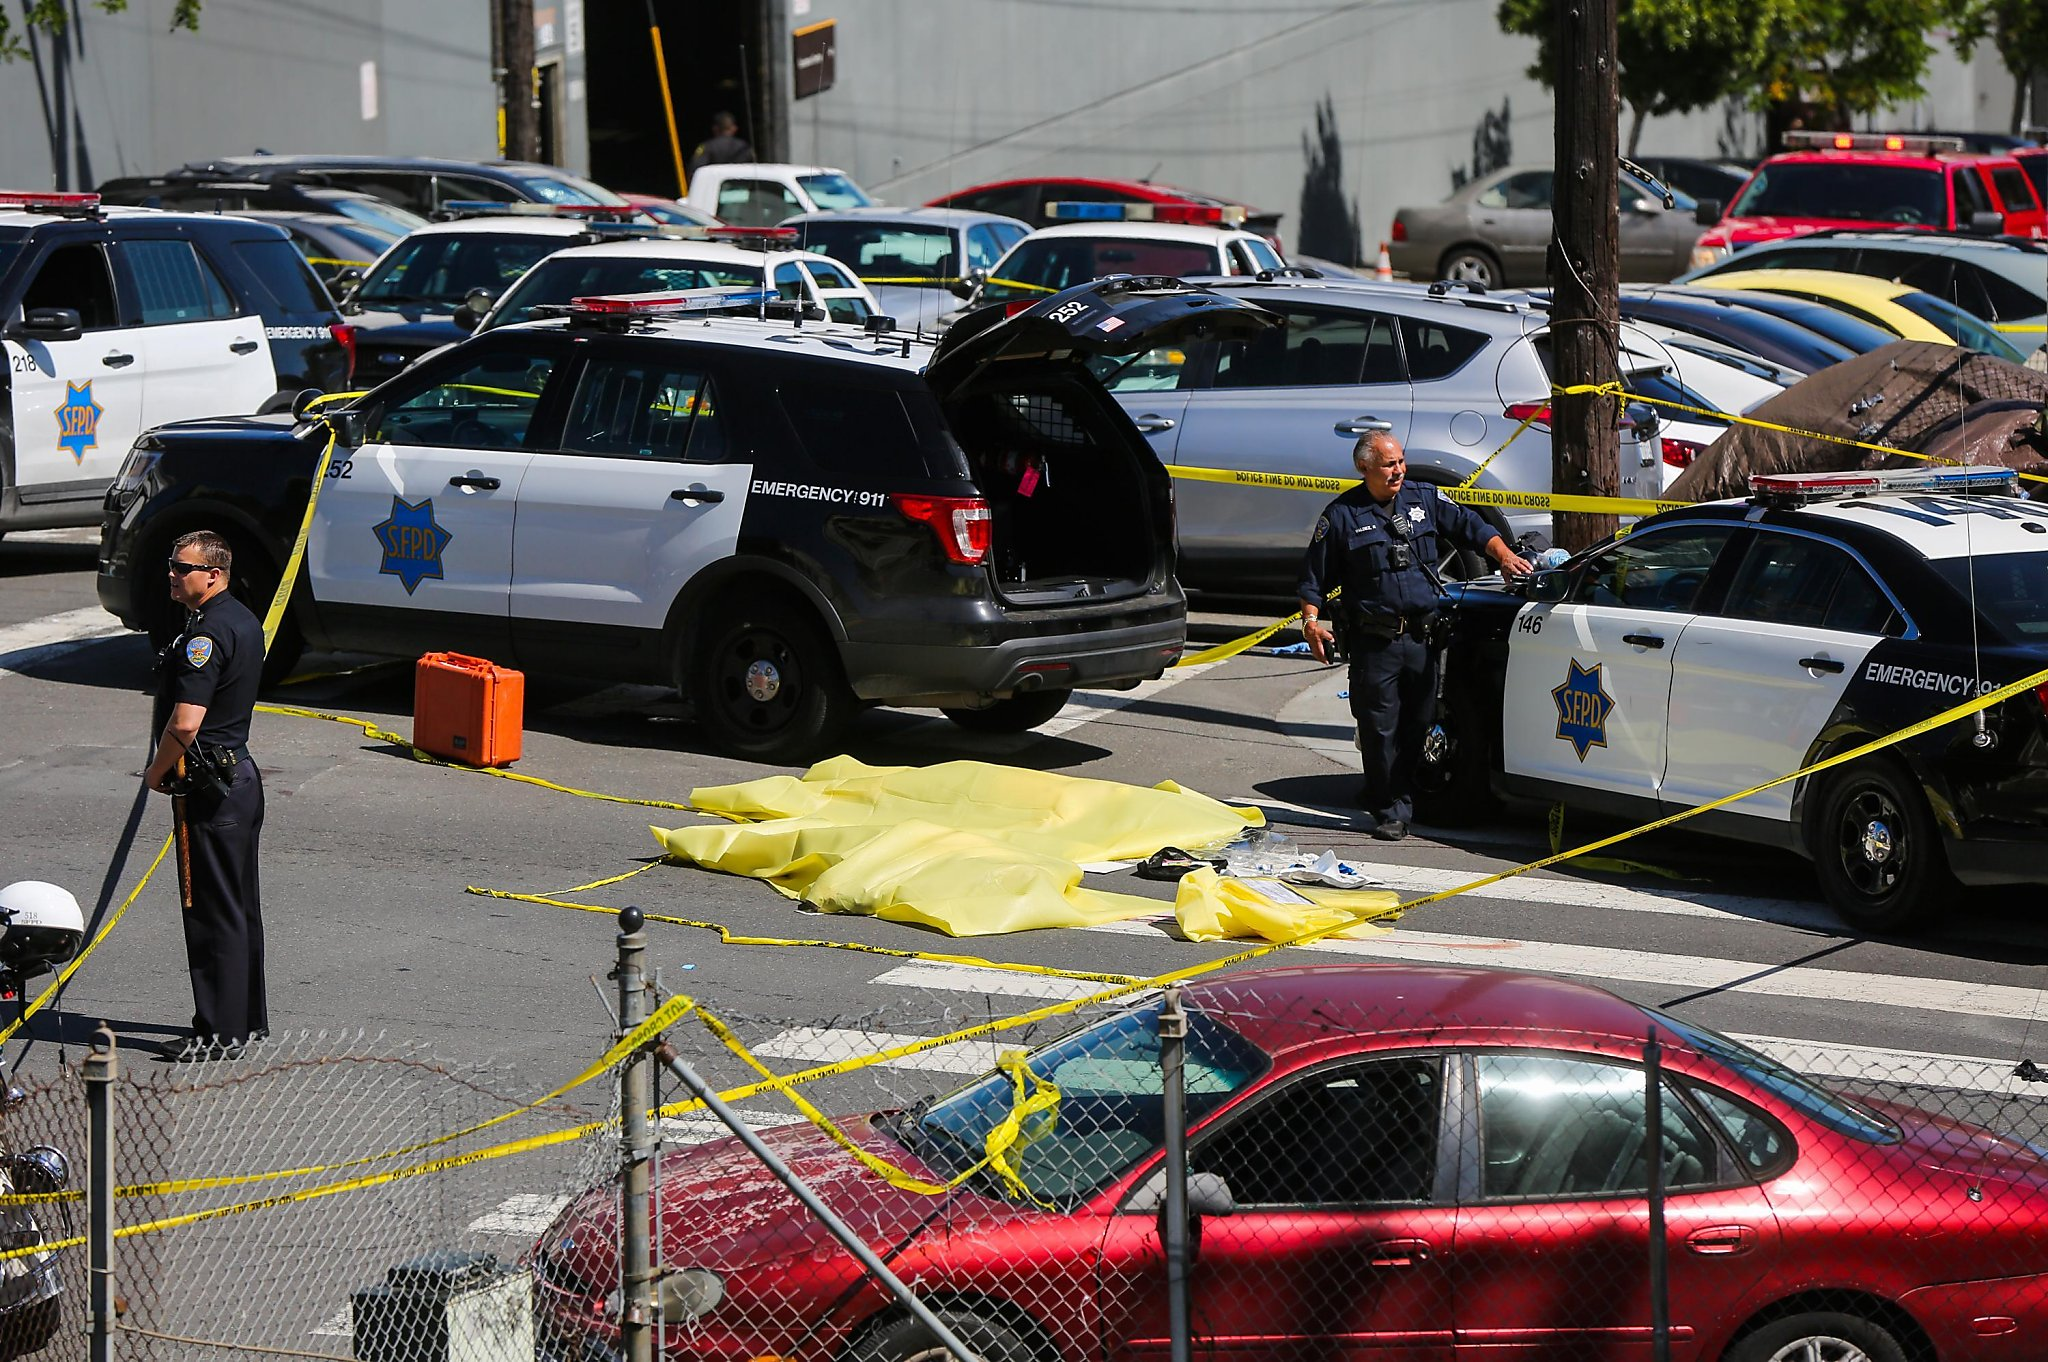 Seite 55 Shooter gunman kills 3 shoots self at ups building in sf sfgate